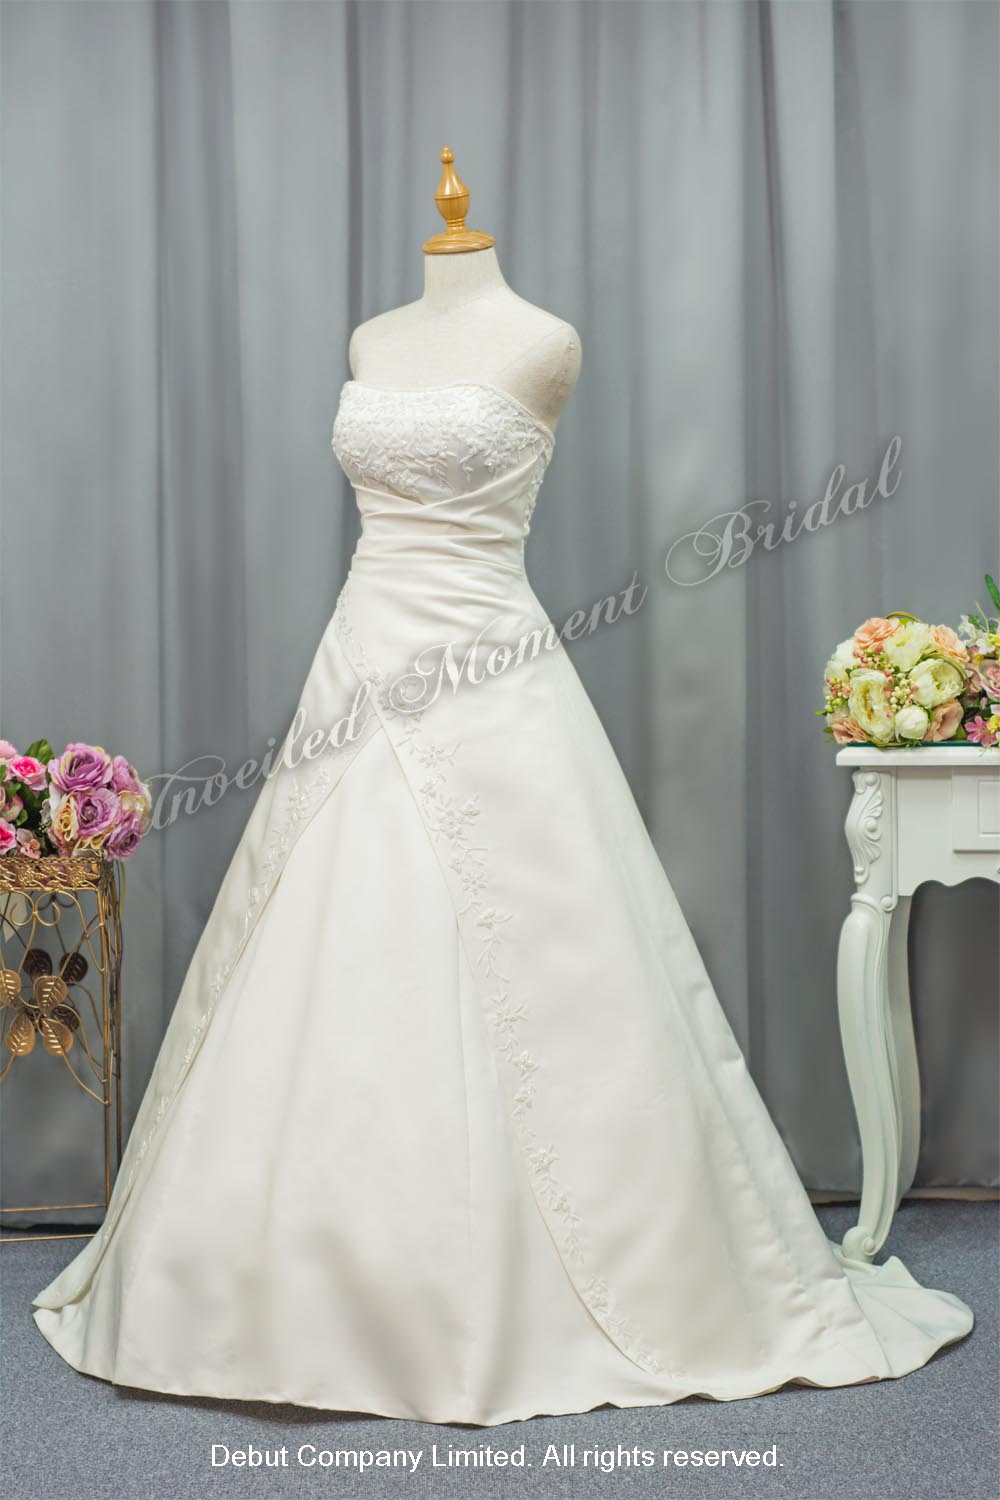 無肩帶 low-cut, A-line, 釘珠花邊, 絹料小拖尾婚紗 Strapless, empire waistline, satin wedding dress with beadings, criss-cross design overlay court train